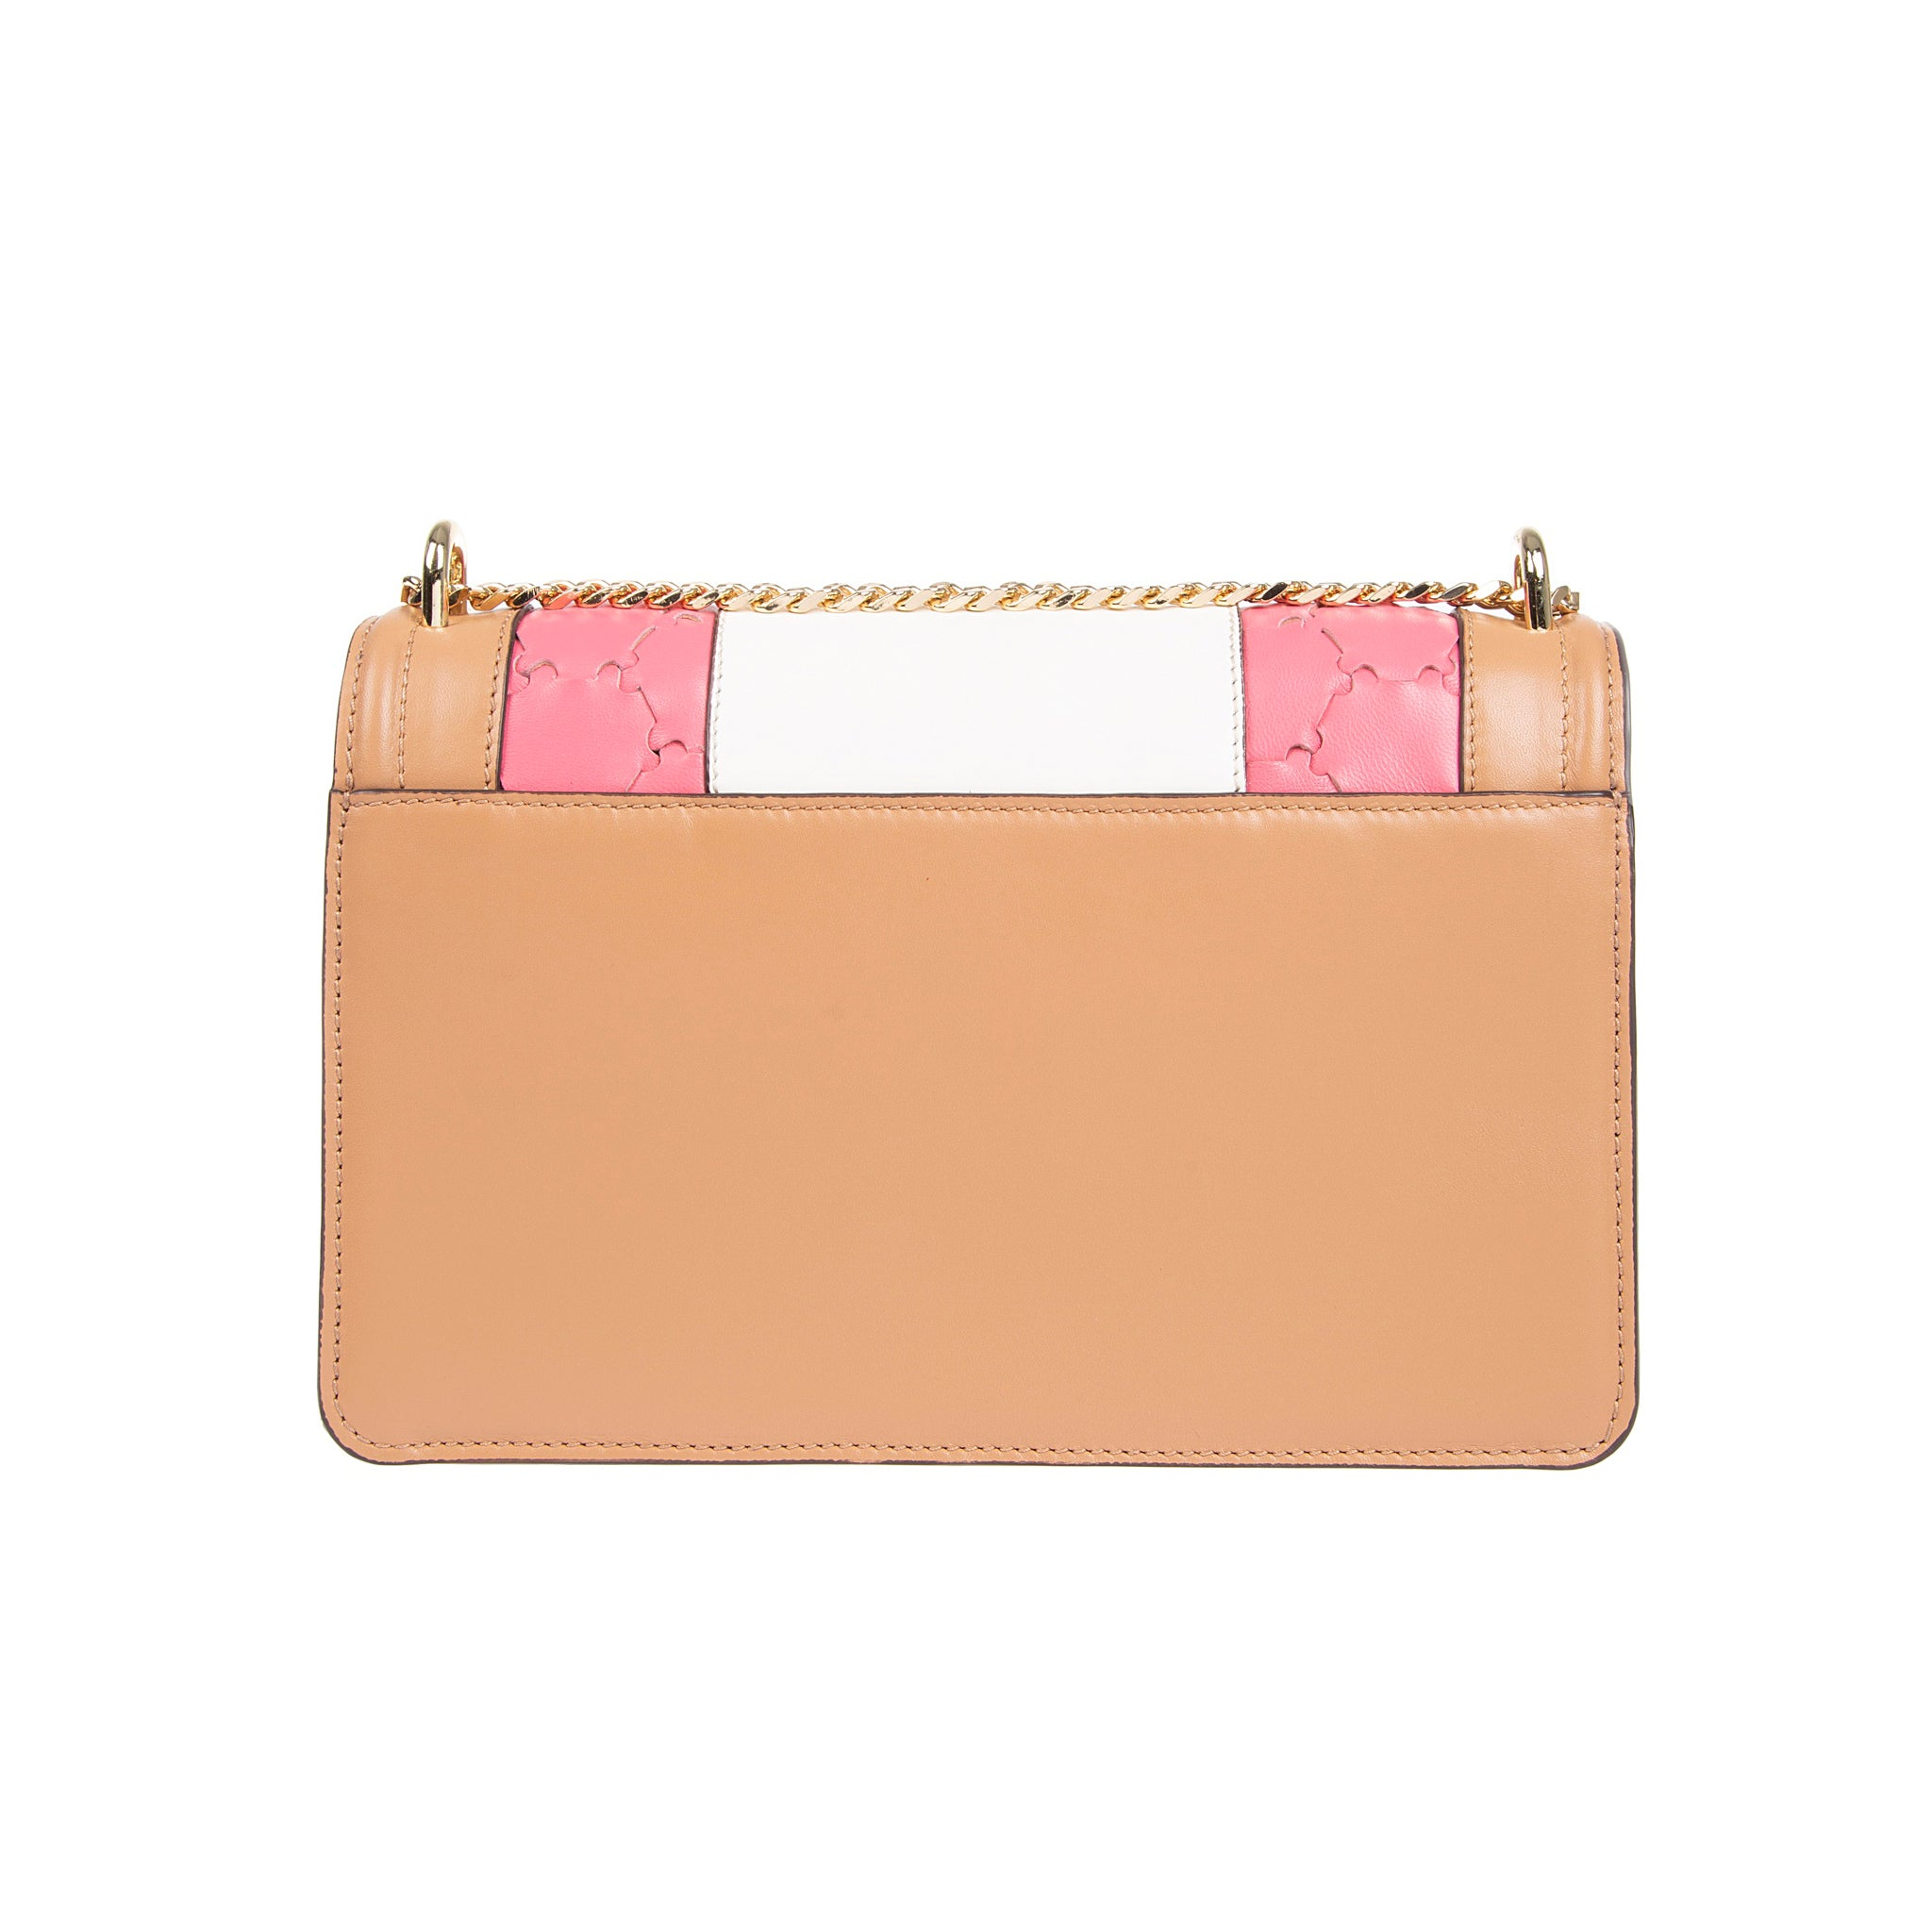 M U A L L A | Leather Shoulder Bag Camel/Pink/White